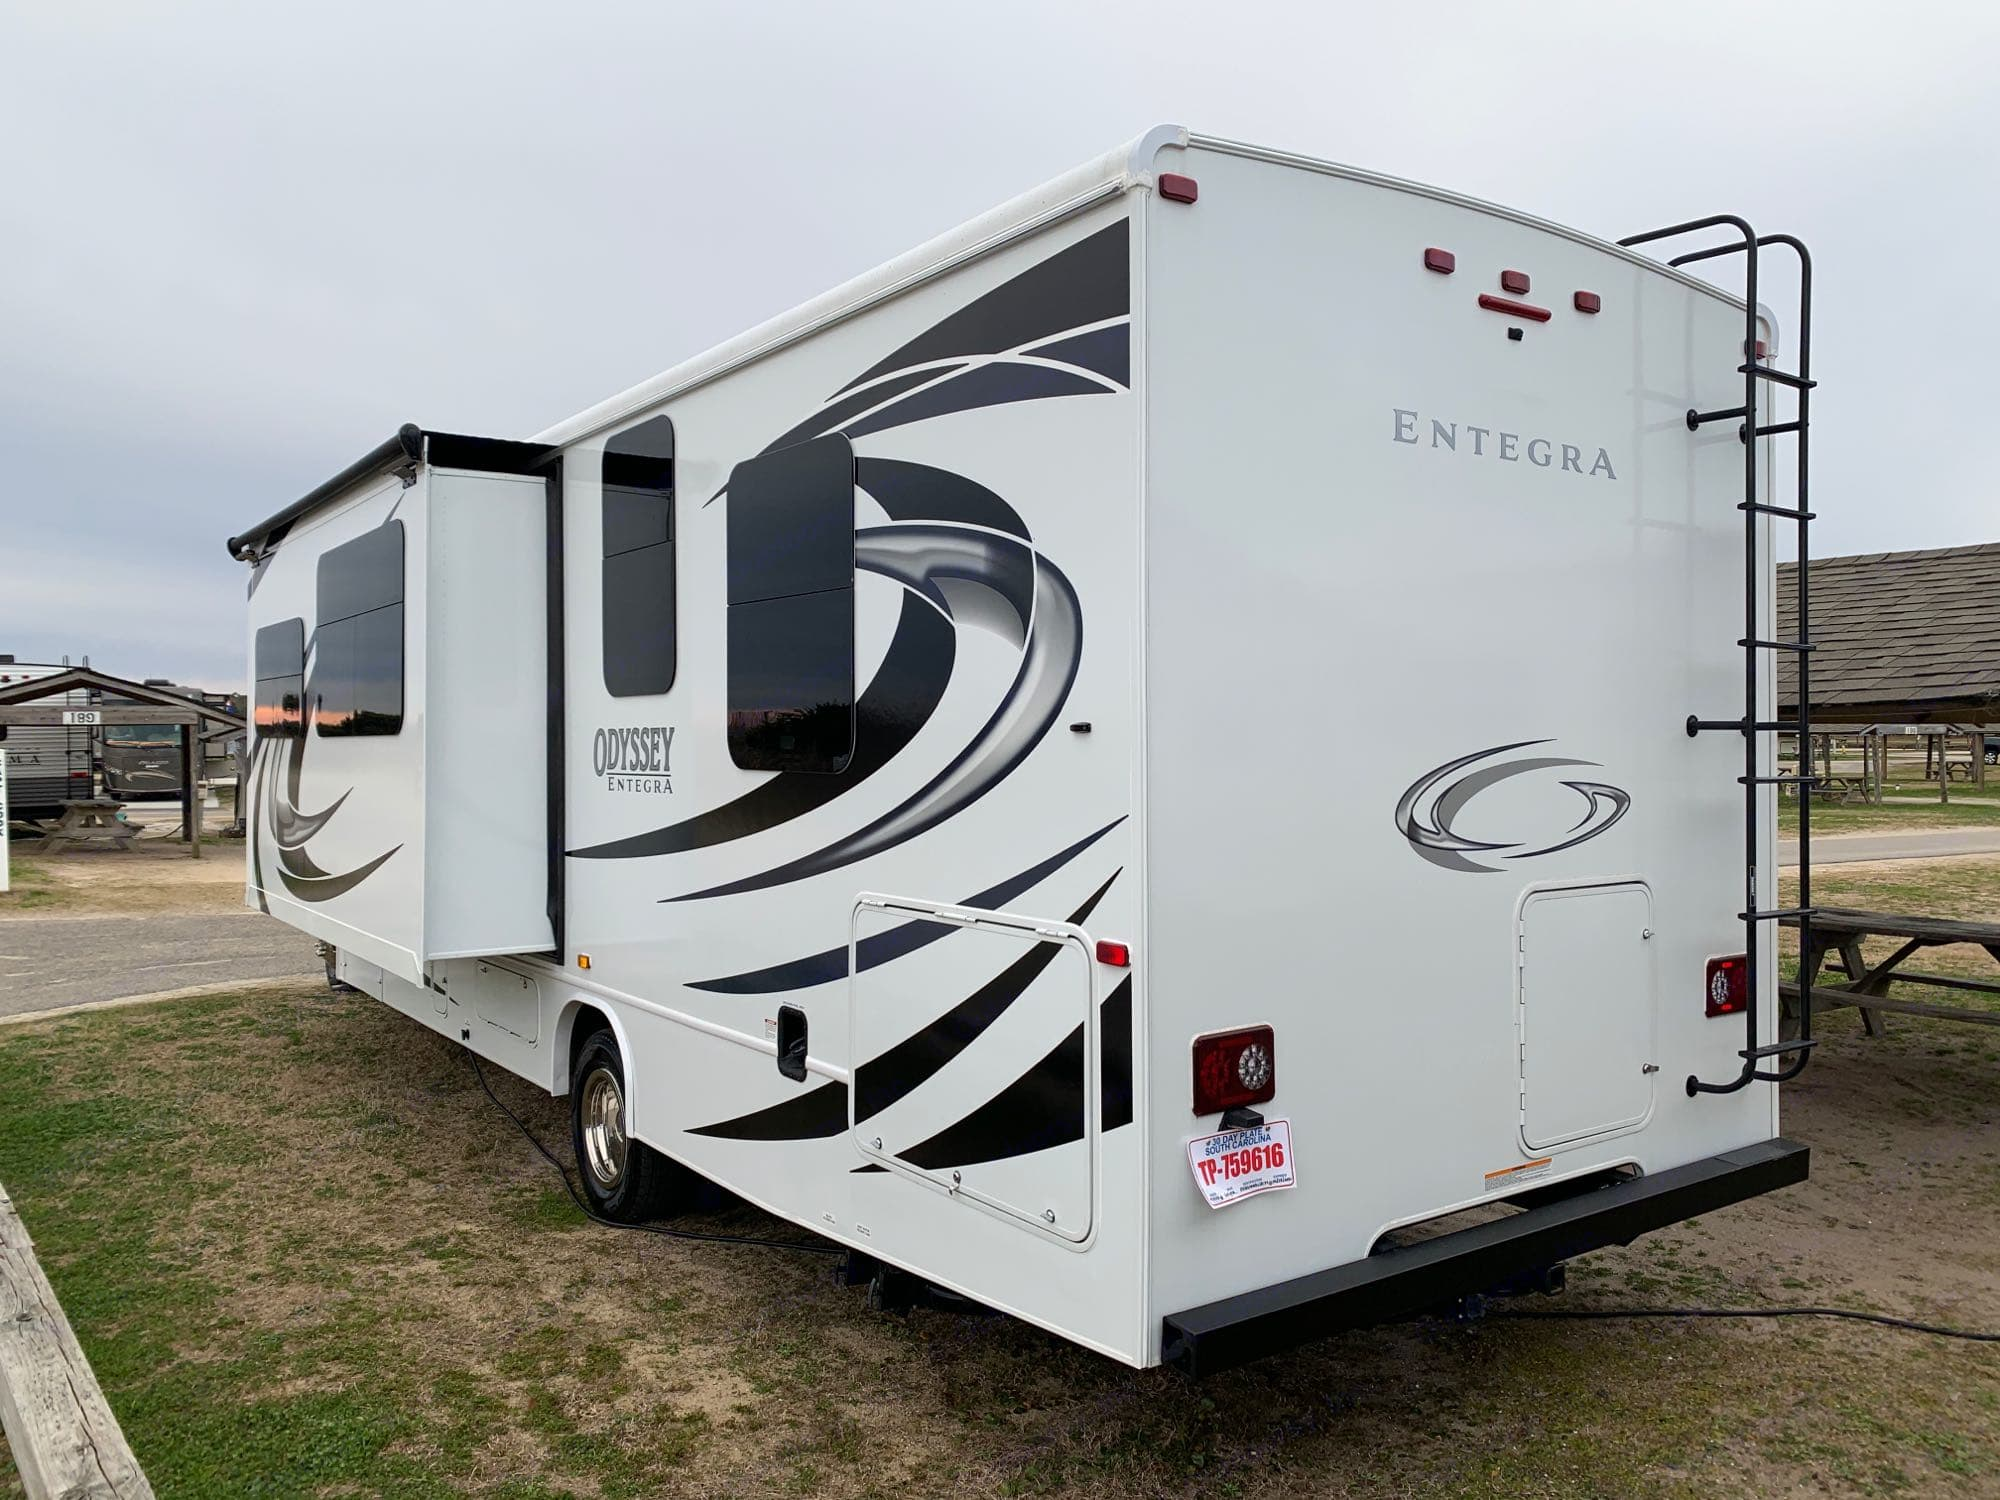 """Outdoor hot/cold shower and built-in water filter.  Slide out, dark tinted windows all around for privacy and temperature management. 4"""" steel rear bumper offers storage for drain tubes, away from your belongings!  Trailer hitch perfect for a bike rack, or tow capacity of 7500 lbs!. Entegra Coach Odyssey 29K 2021"""